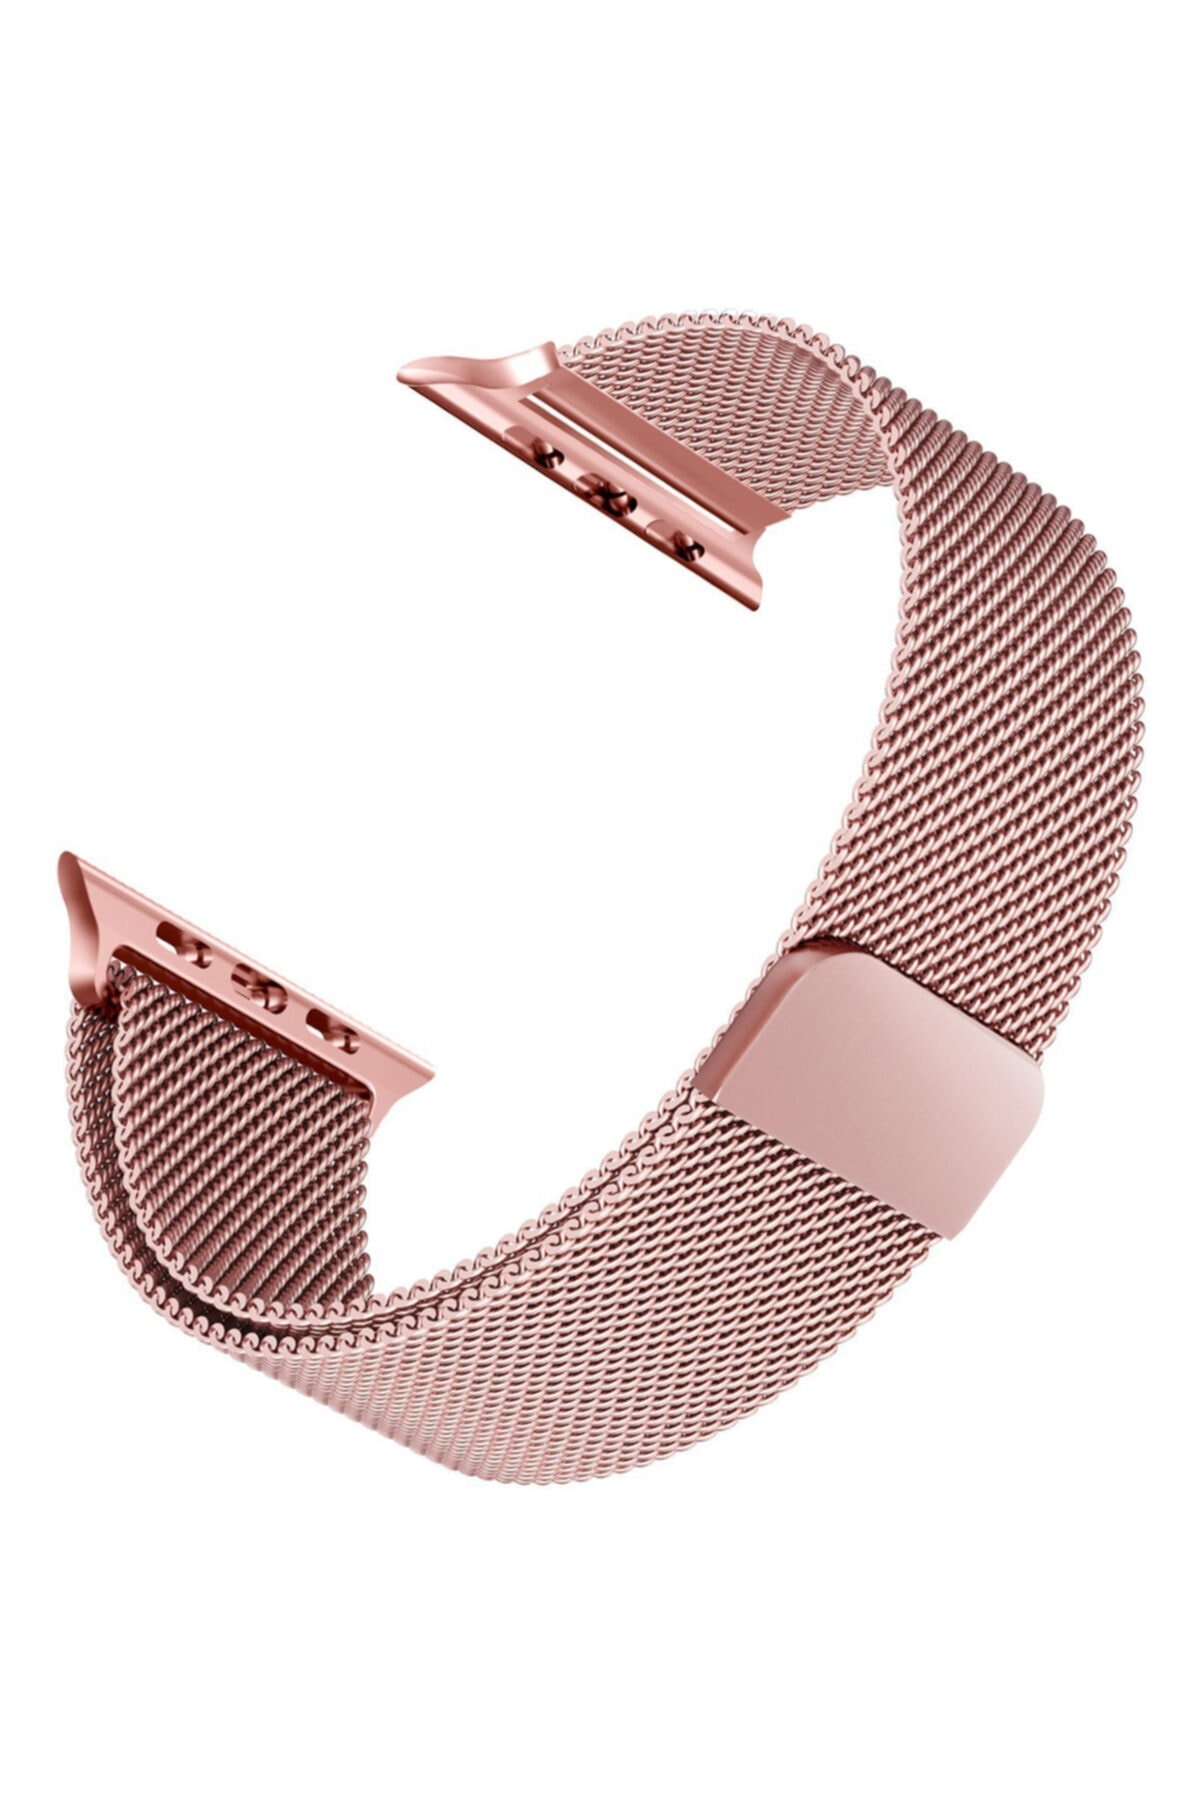 Microsonic Microsonic Watch 5 40mm Milanese Loop Kordon Rose Gold 1